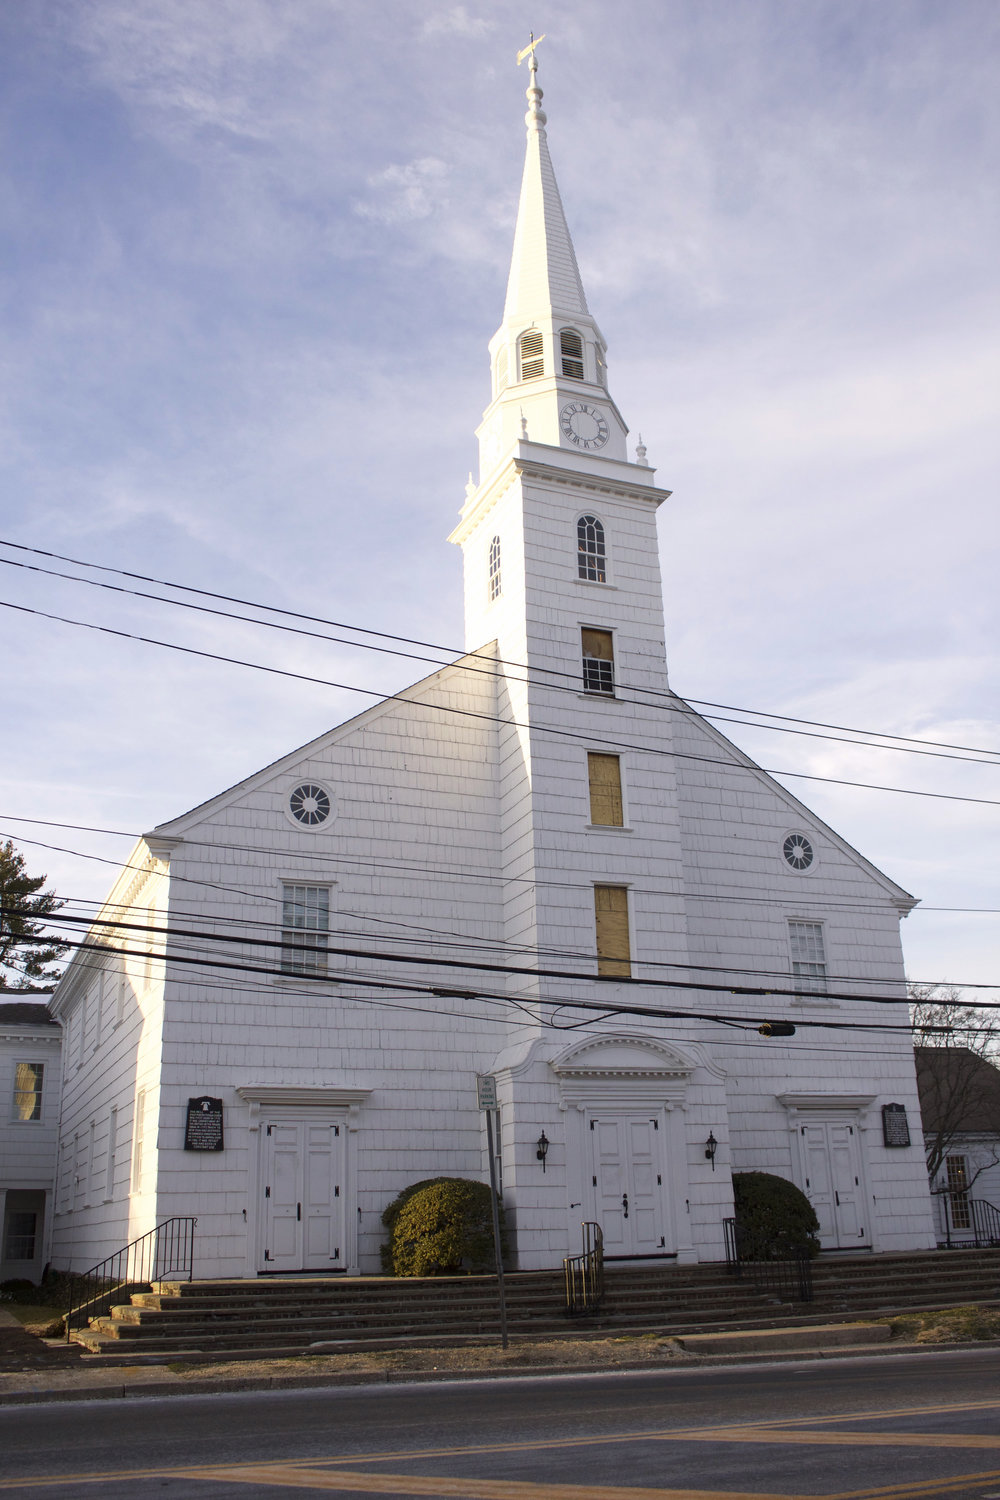 Long Islander News photo/Janee Law The Old First Presbyterian Church recently unveiled its 100 foot tall steeple, after it underwent a five month restoration process.